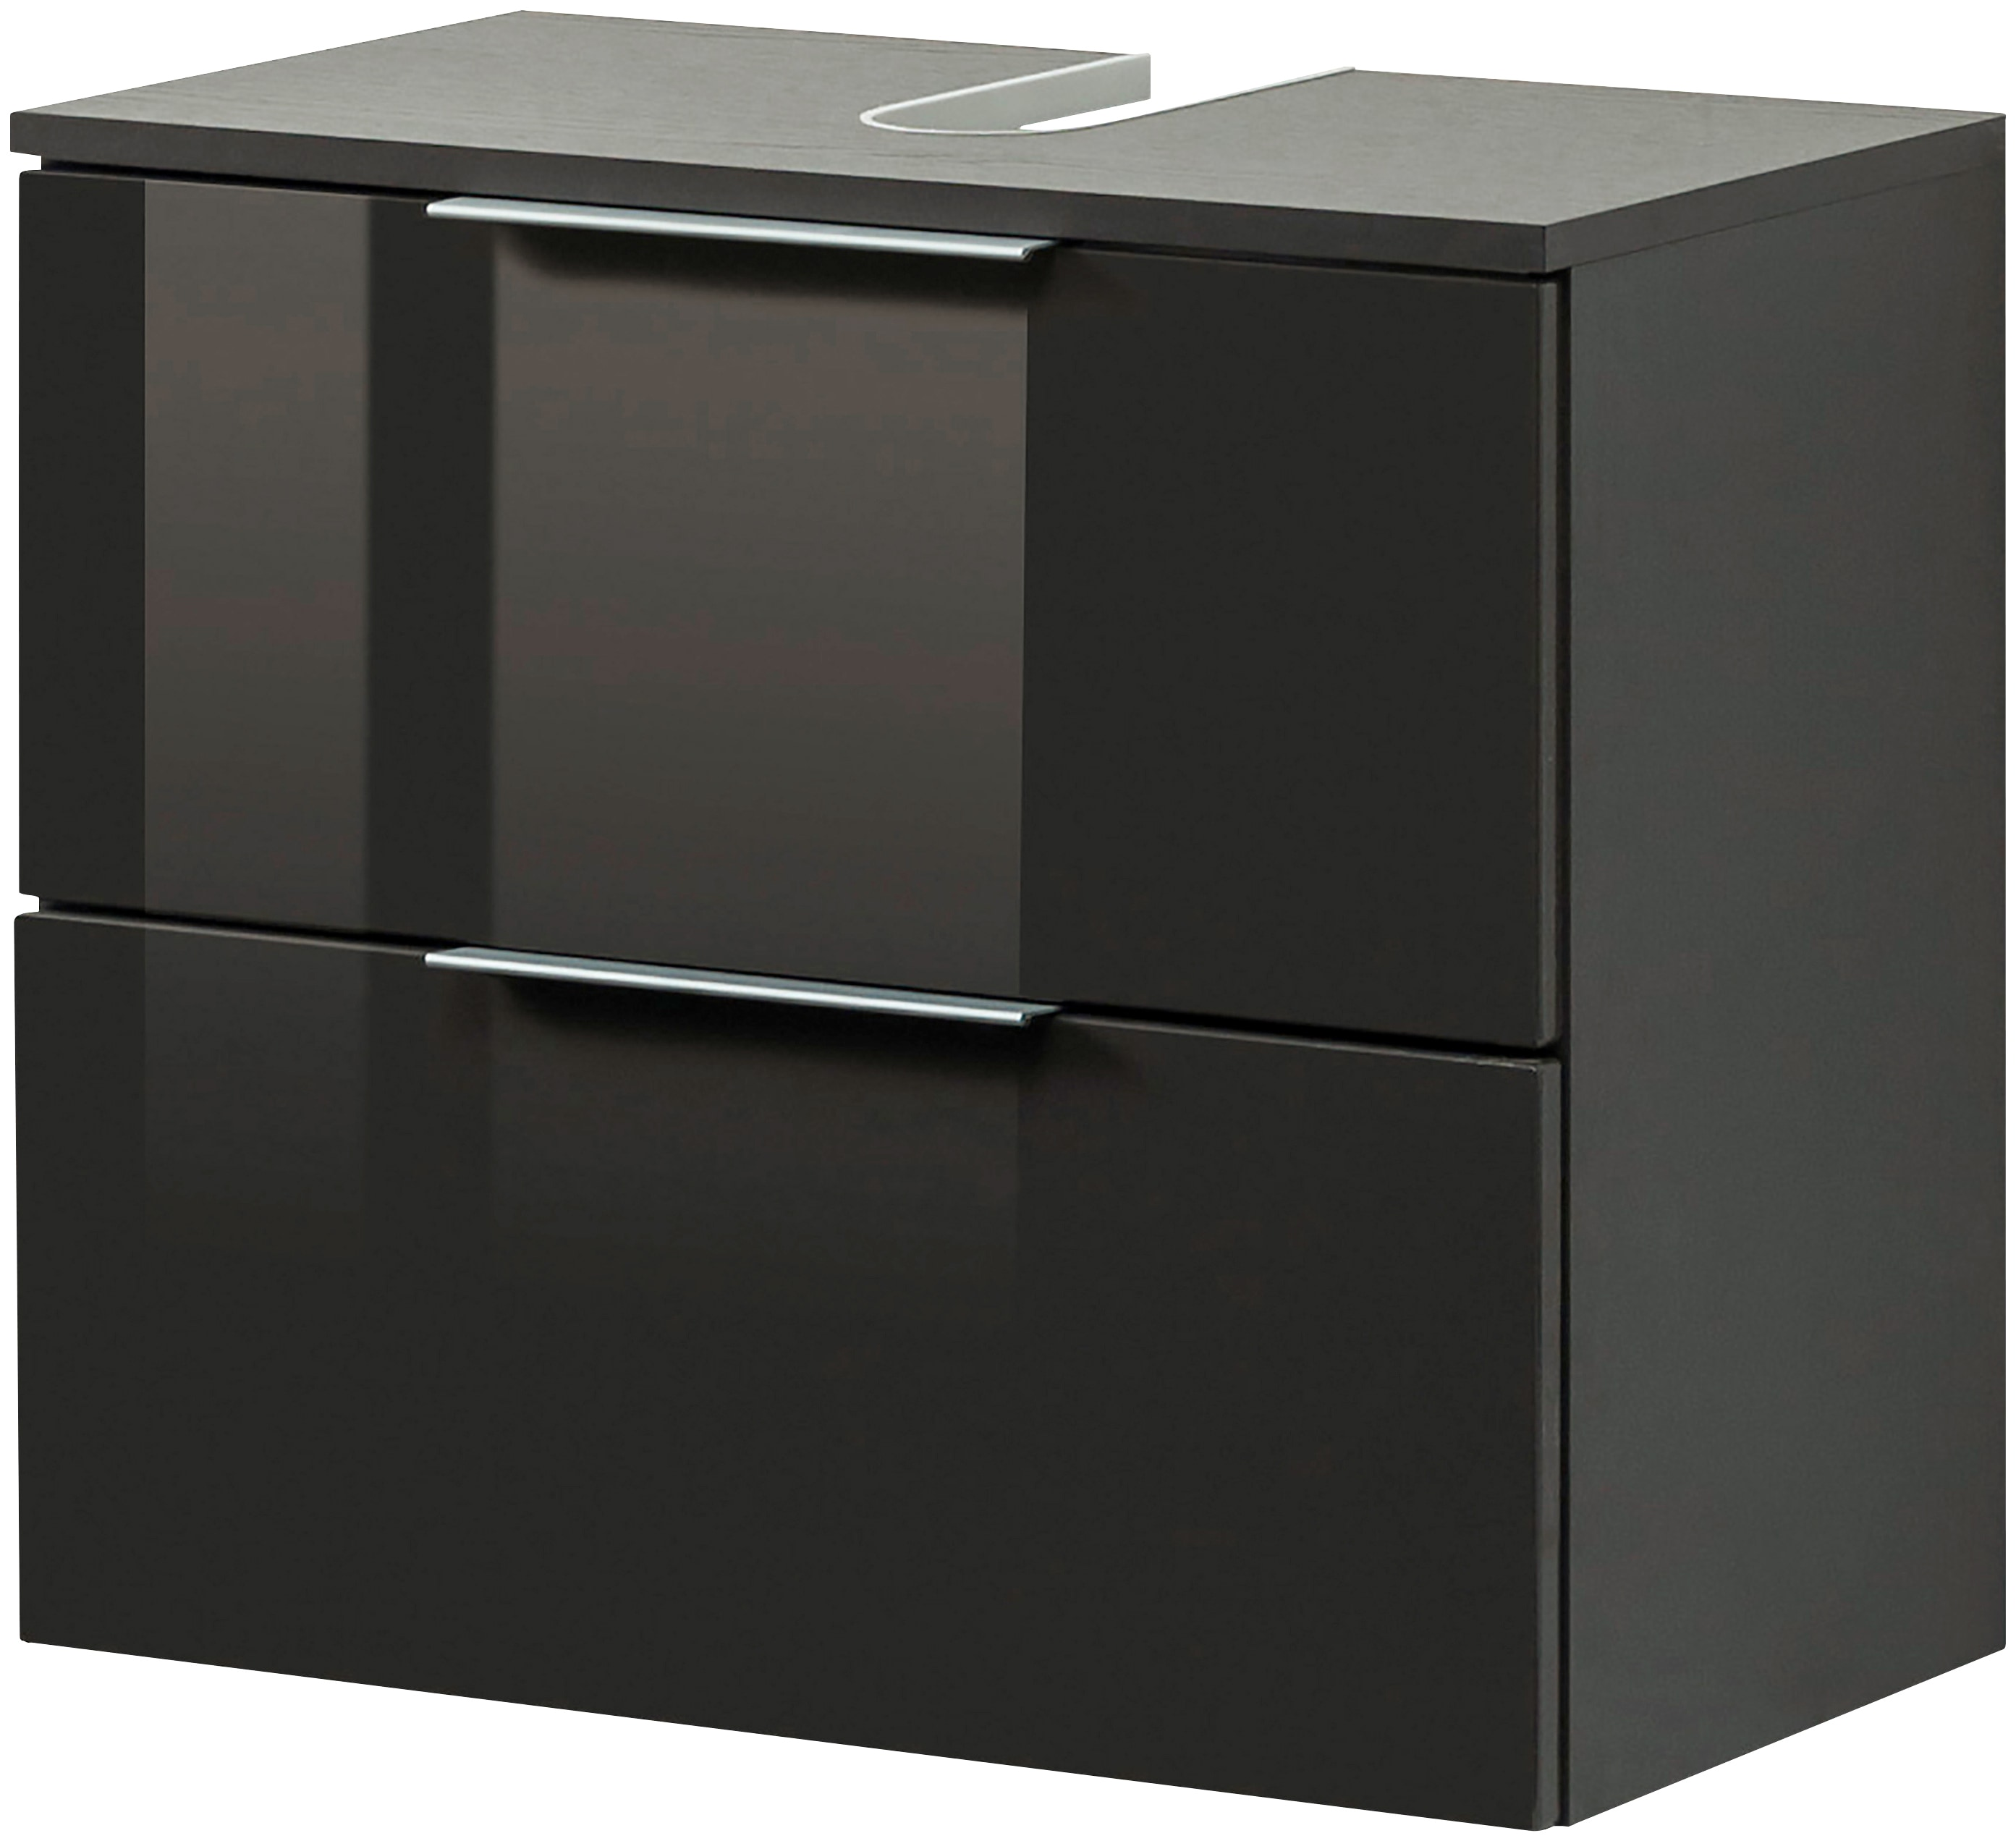 held m bel waschbeckenunterschrank ravello breite 60 cm moebel suchmaschine. Black Bedroom Furniture Sets. Home Design Ideas